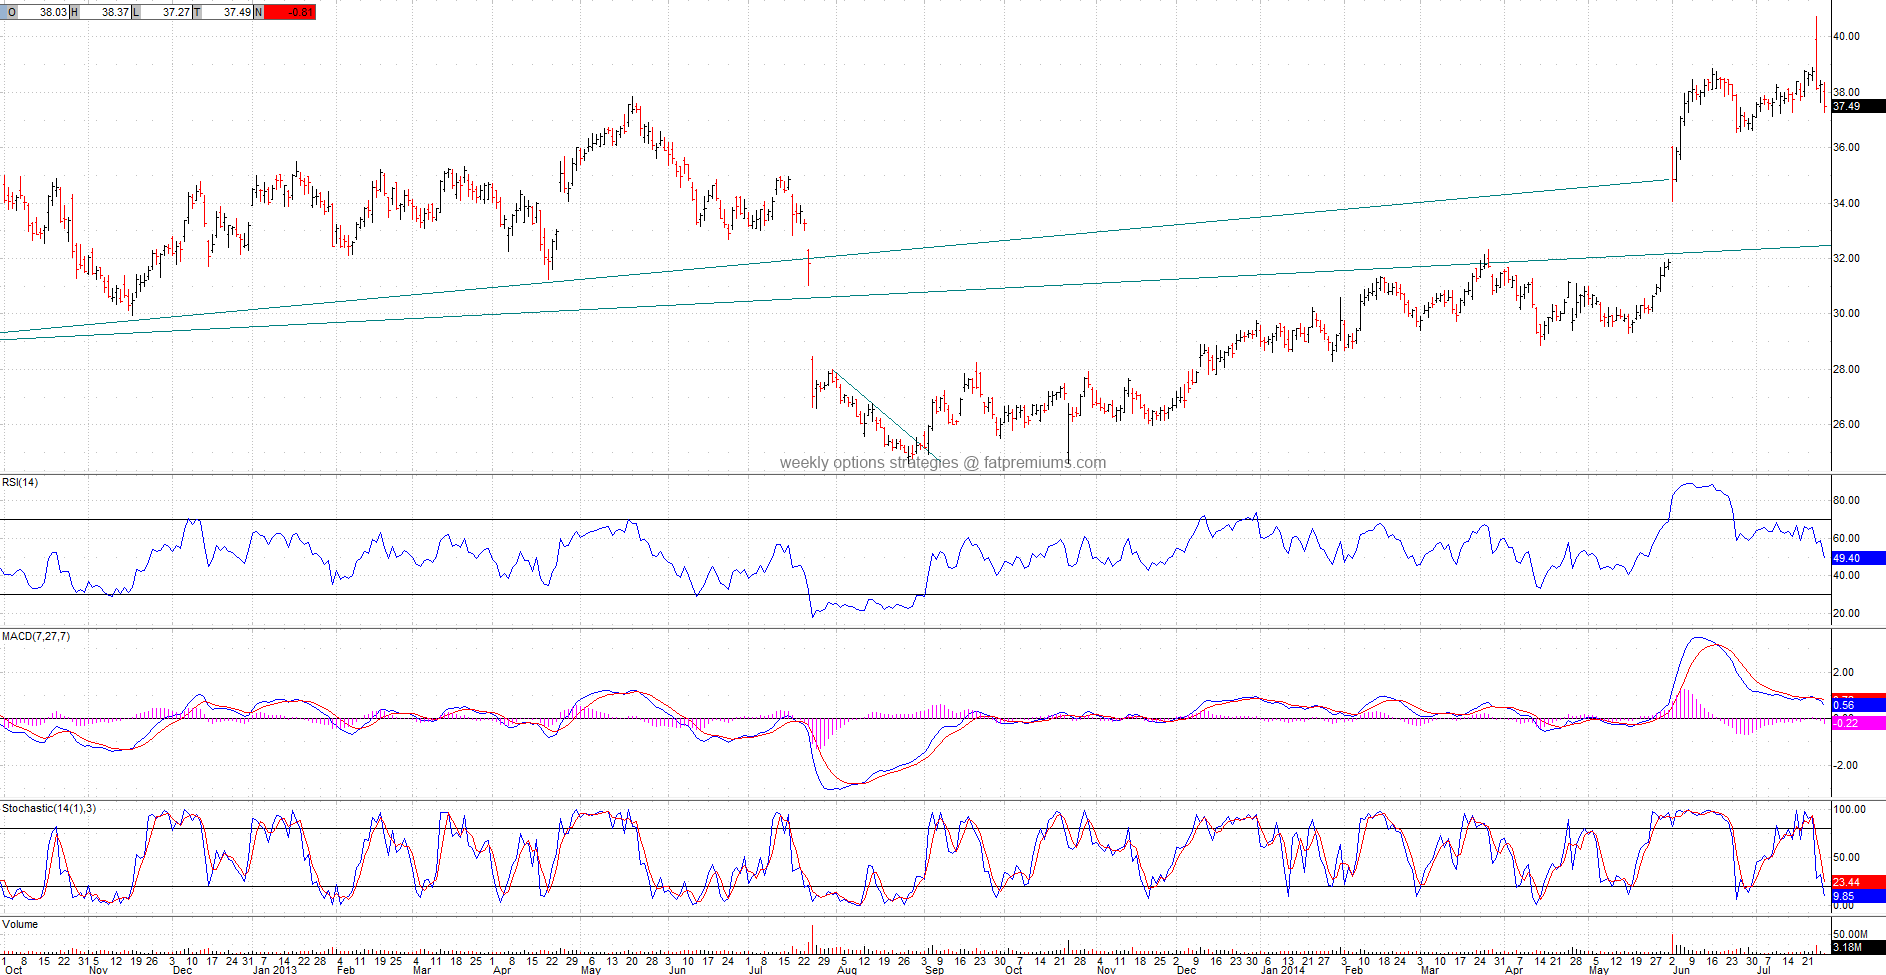 Broadcom Corporation (NASDAQ:BRCM) Daily Chart (2014-07-25) Bearish